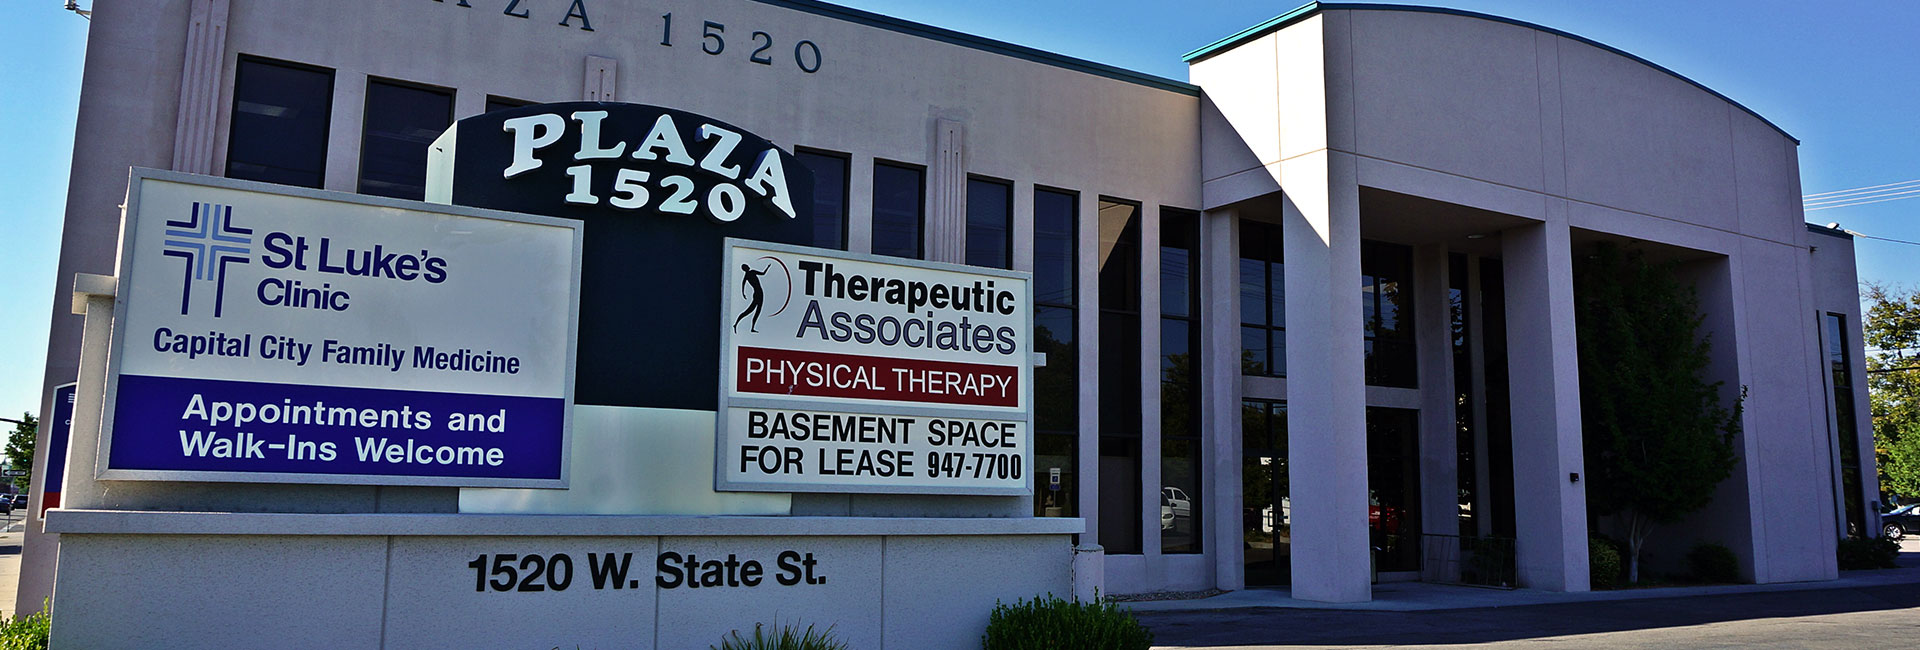 Therapeutic Associates Physical Therapy - Boise State Street